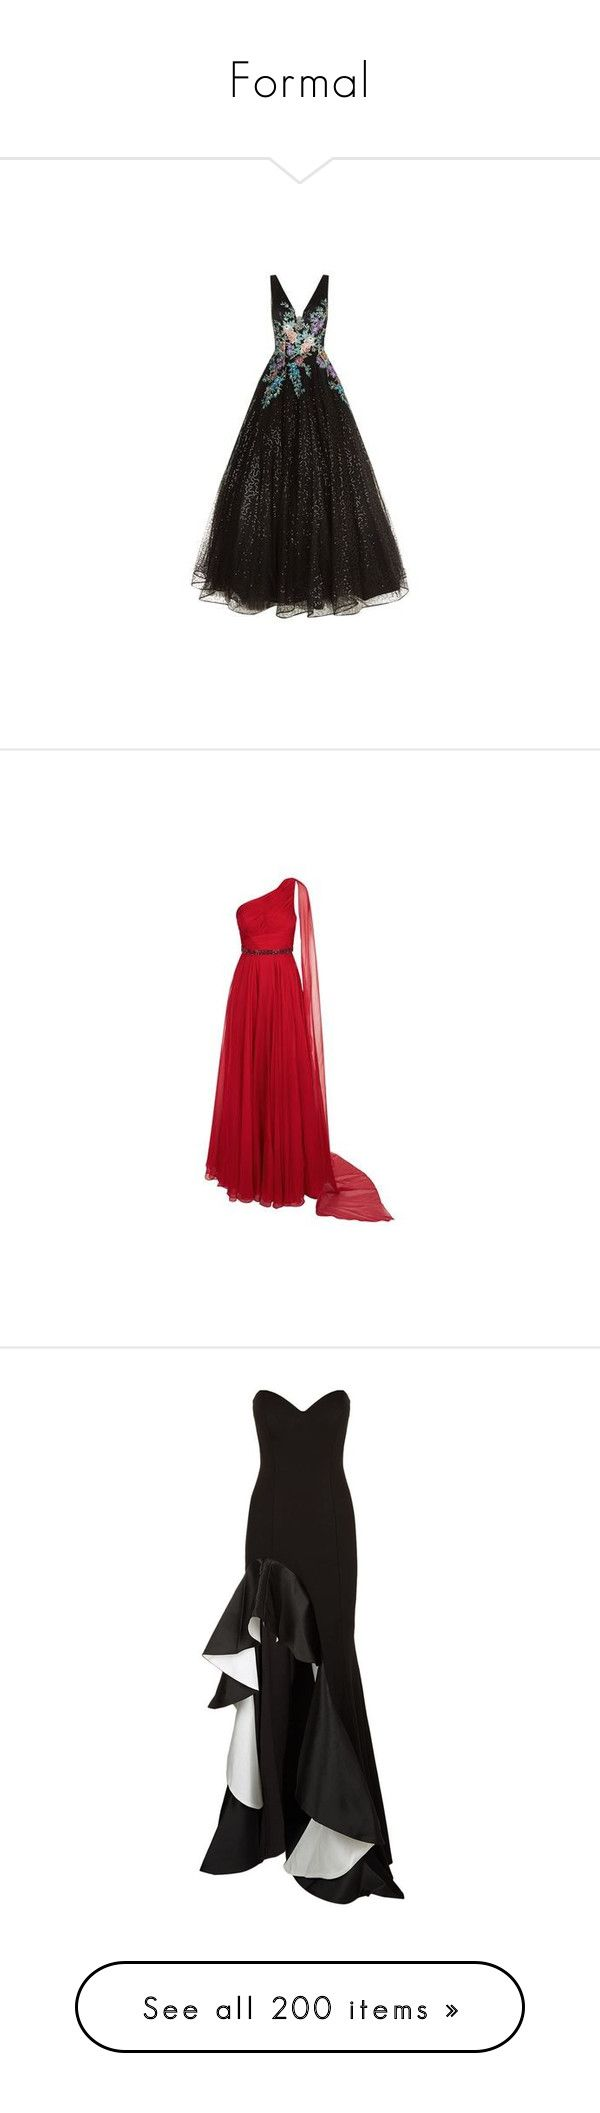 """Formal"" by rosaregaler ❤ liked on Polyvore featuring dresses, gowns, floral evening dresses, floral evening gown, jovani gown, floral ball gown, plunging v neck dress, red evening gowns, red chiffon gowns and chiffon evening dresses"